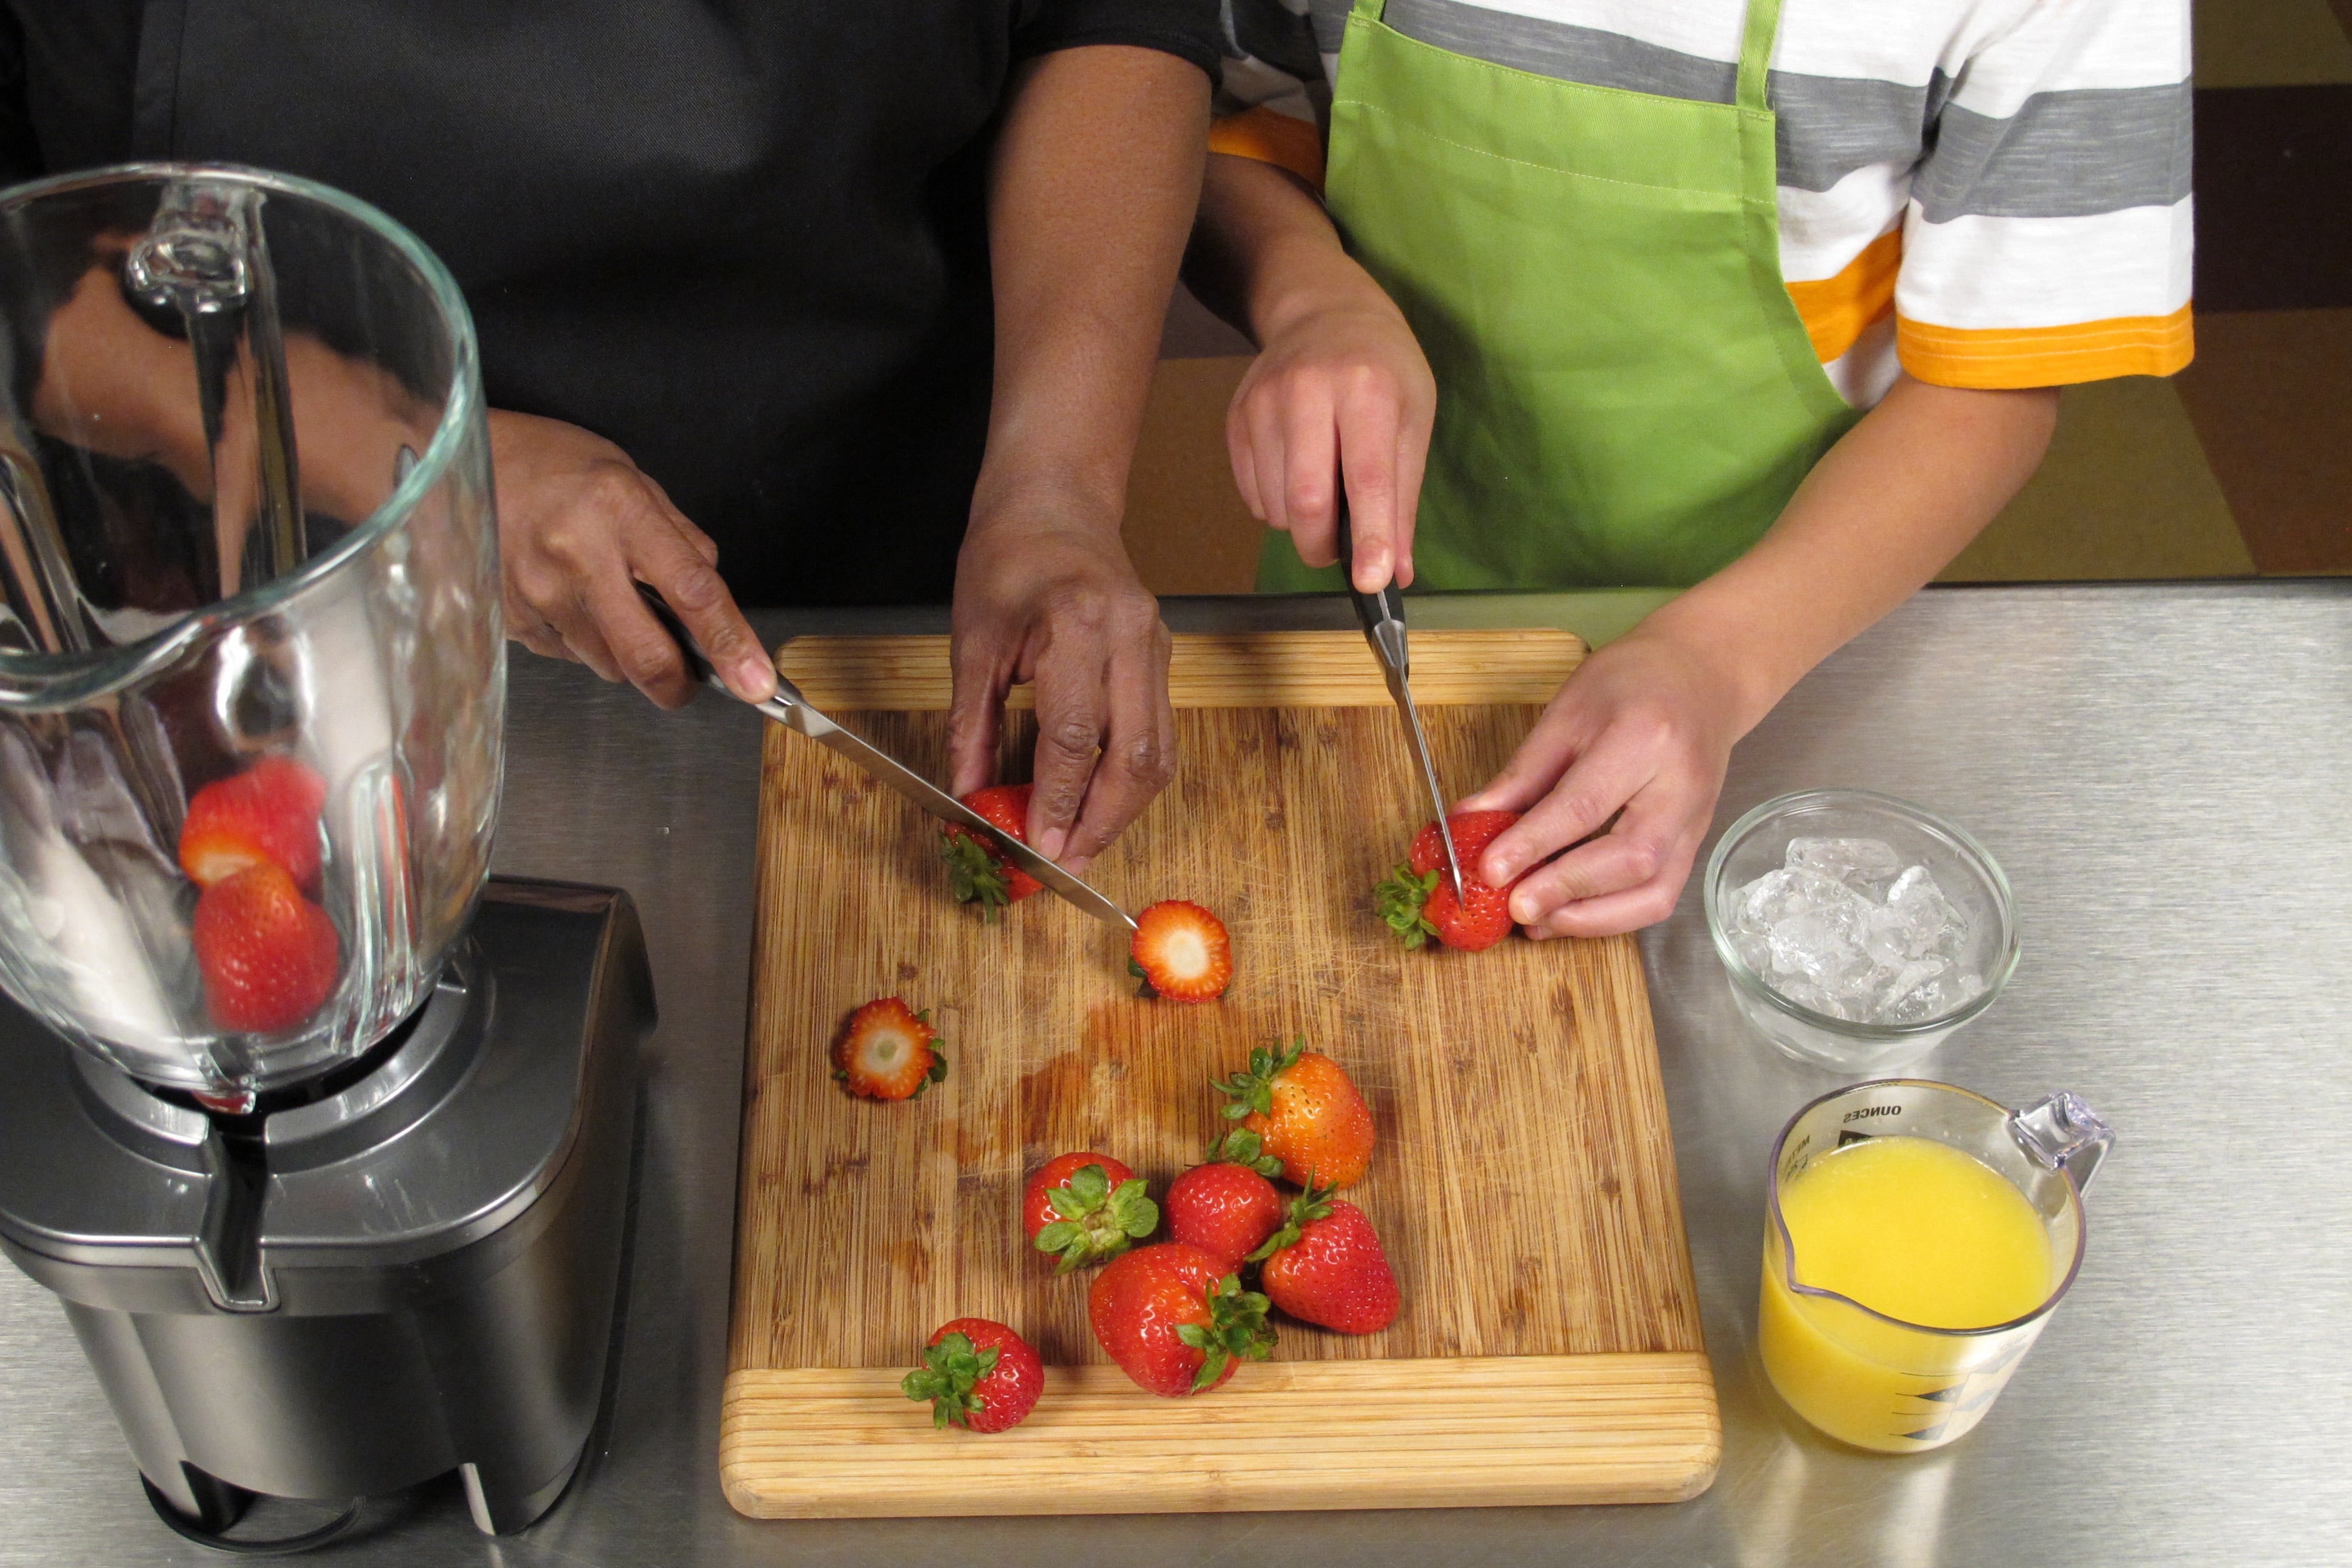 Remove stem and leaves and cut strawberries in half. Younger children can use a plastic knife for this step if desired.